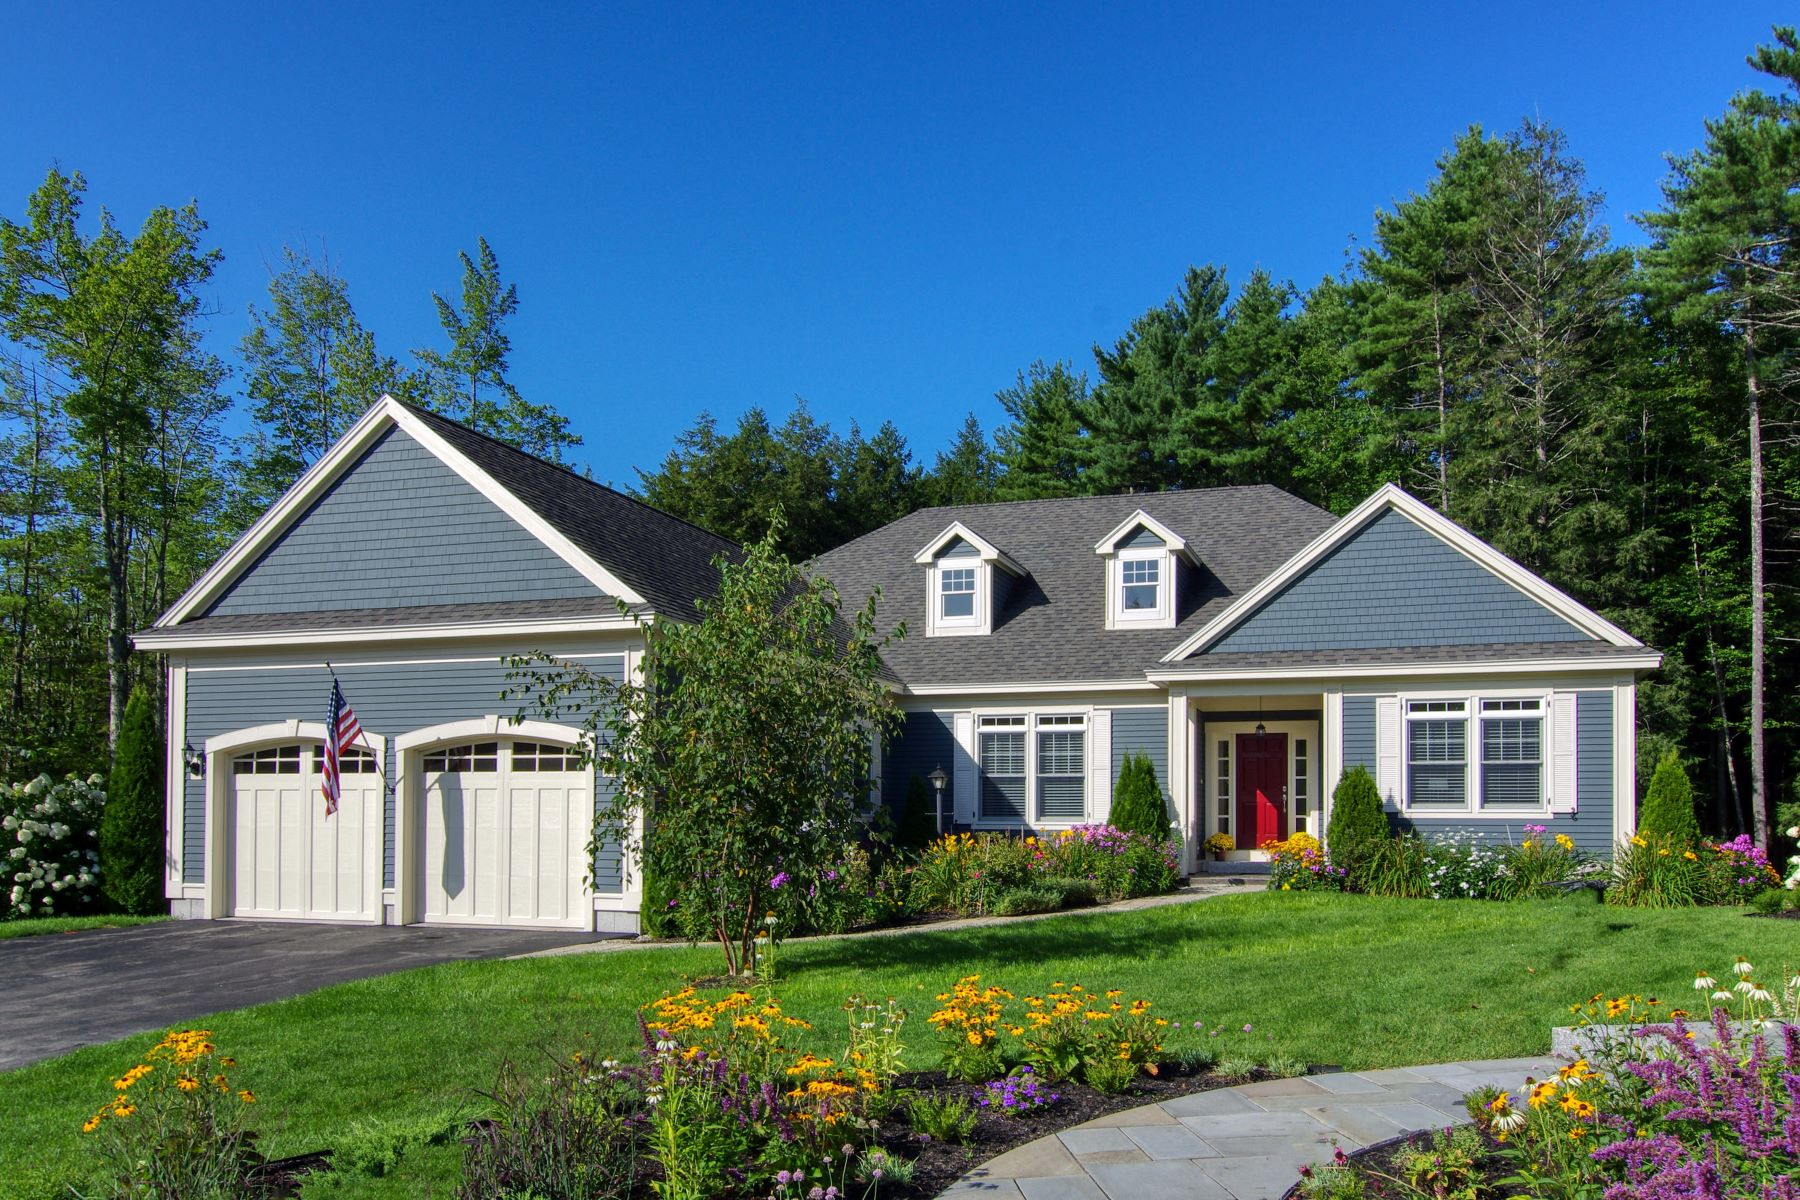 Condominiums for Sale at 11 Lindenwood Lane 11, Falmouth, Maine 04105 United States